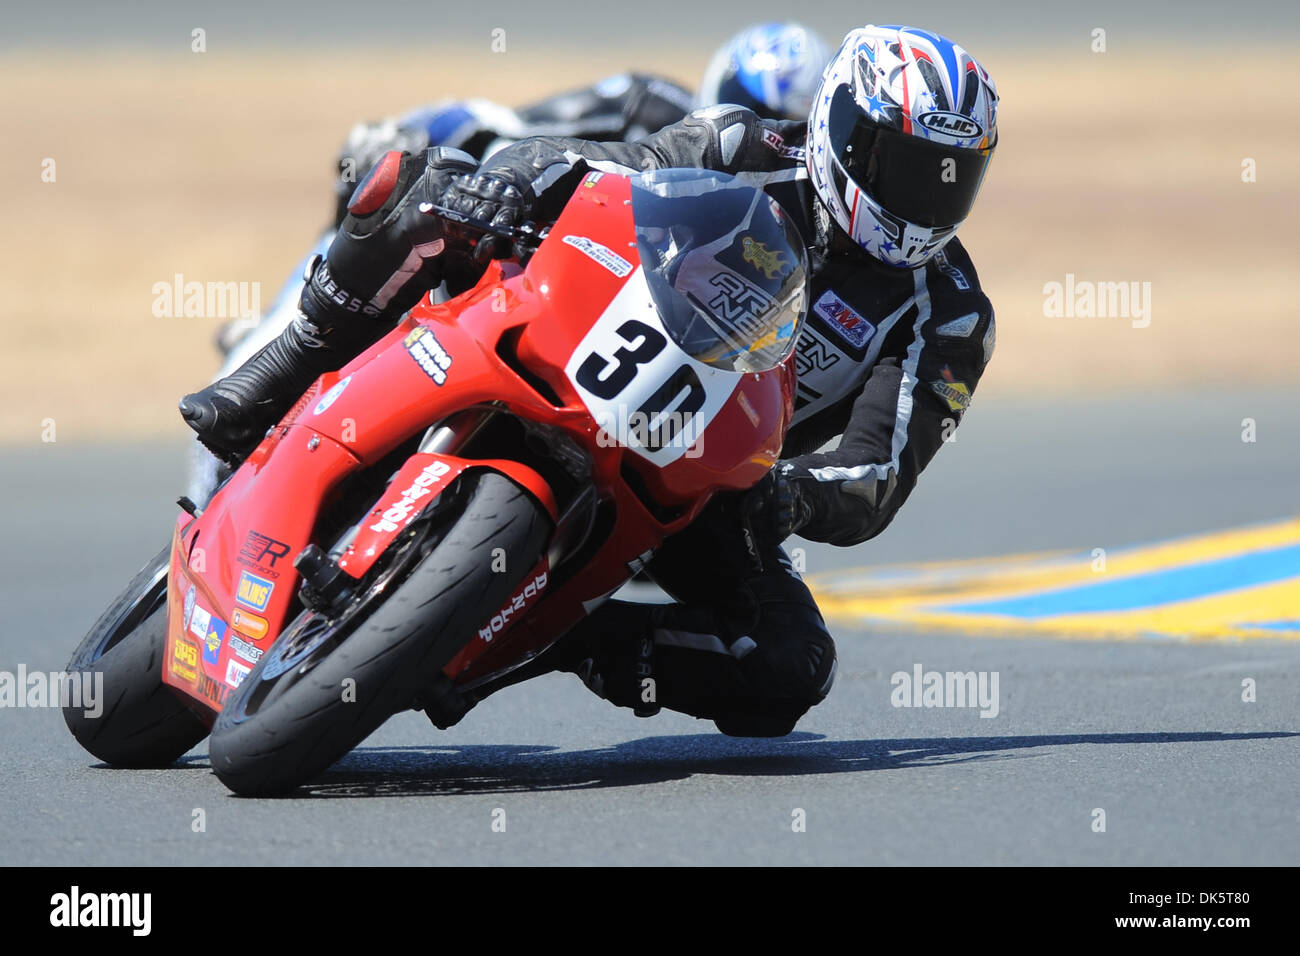 May 13, 2011 - Sonoma, California, United States of America - Nicholas Hayman (30) rides a Ducati 848 during AMA Pro SuperSport practice at the West Coast Moto Jam at Infineon Raceway. (Credit Image: © Matt Cohen/Southcreek Global/ZUMAPRESS.com) - Stock Image